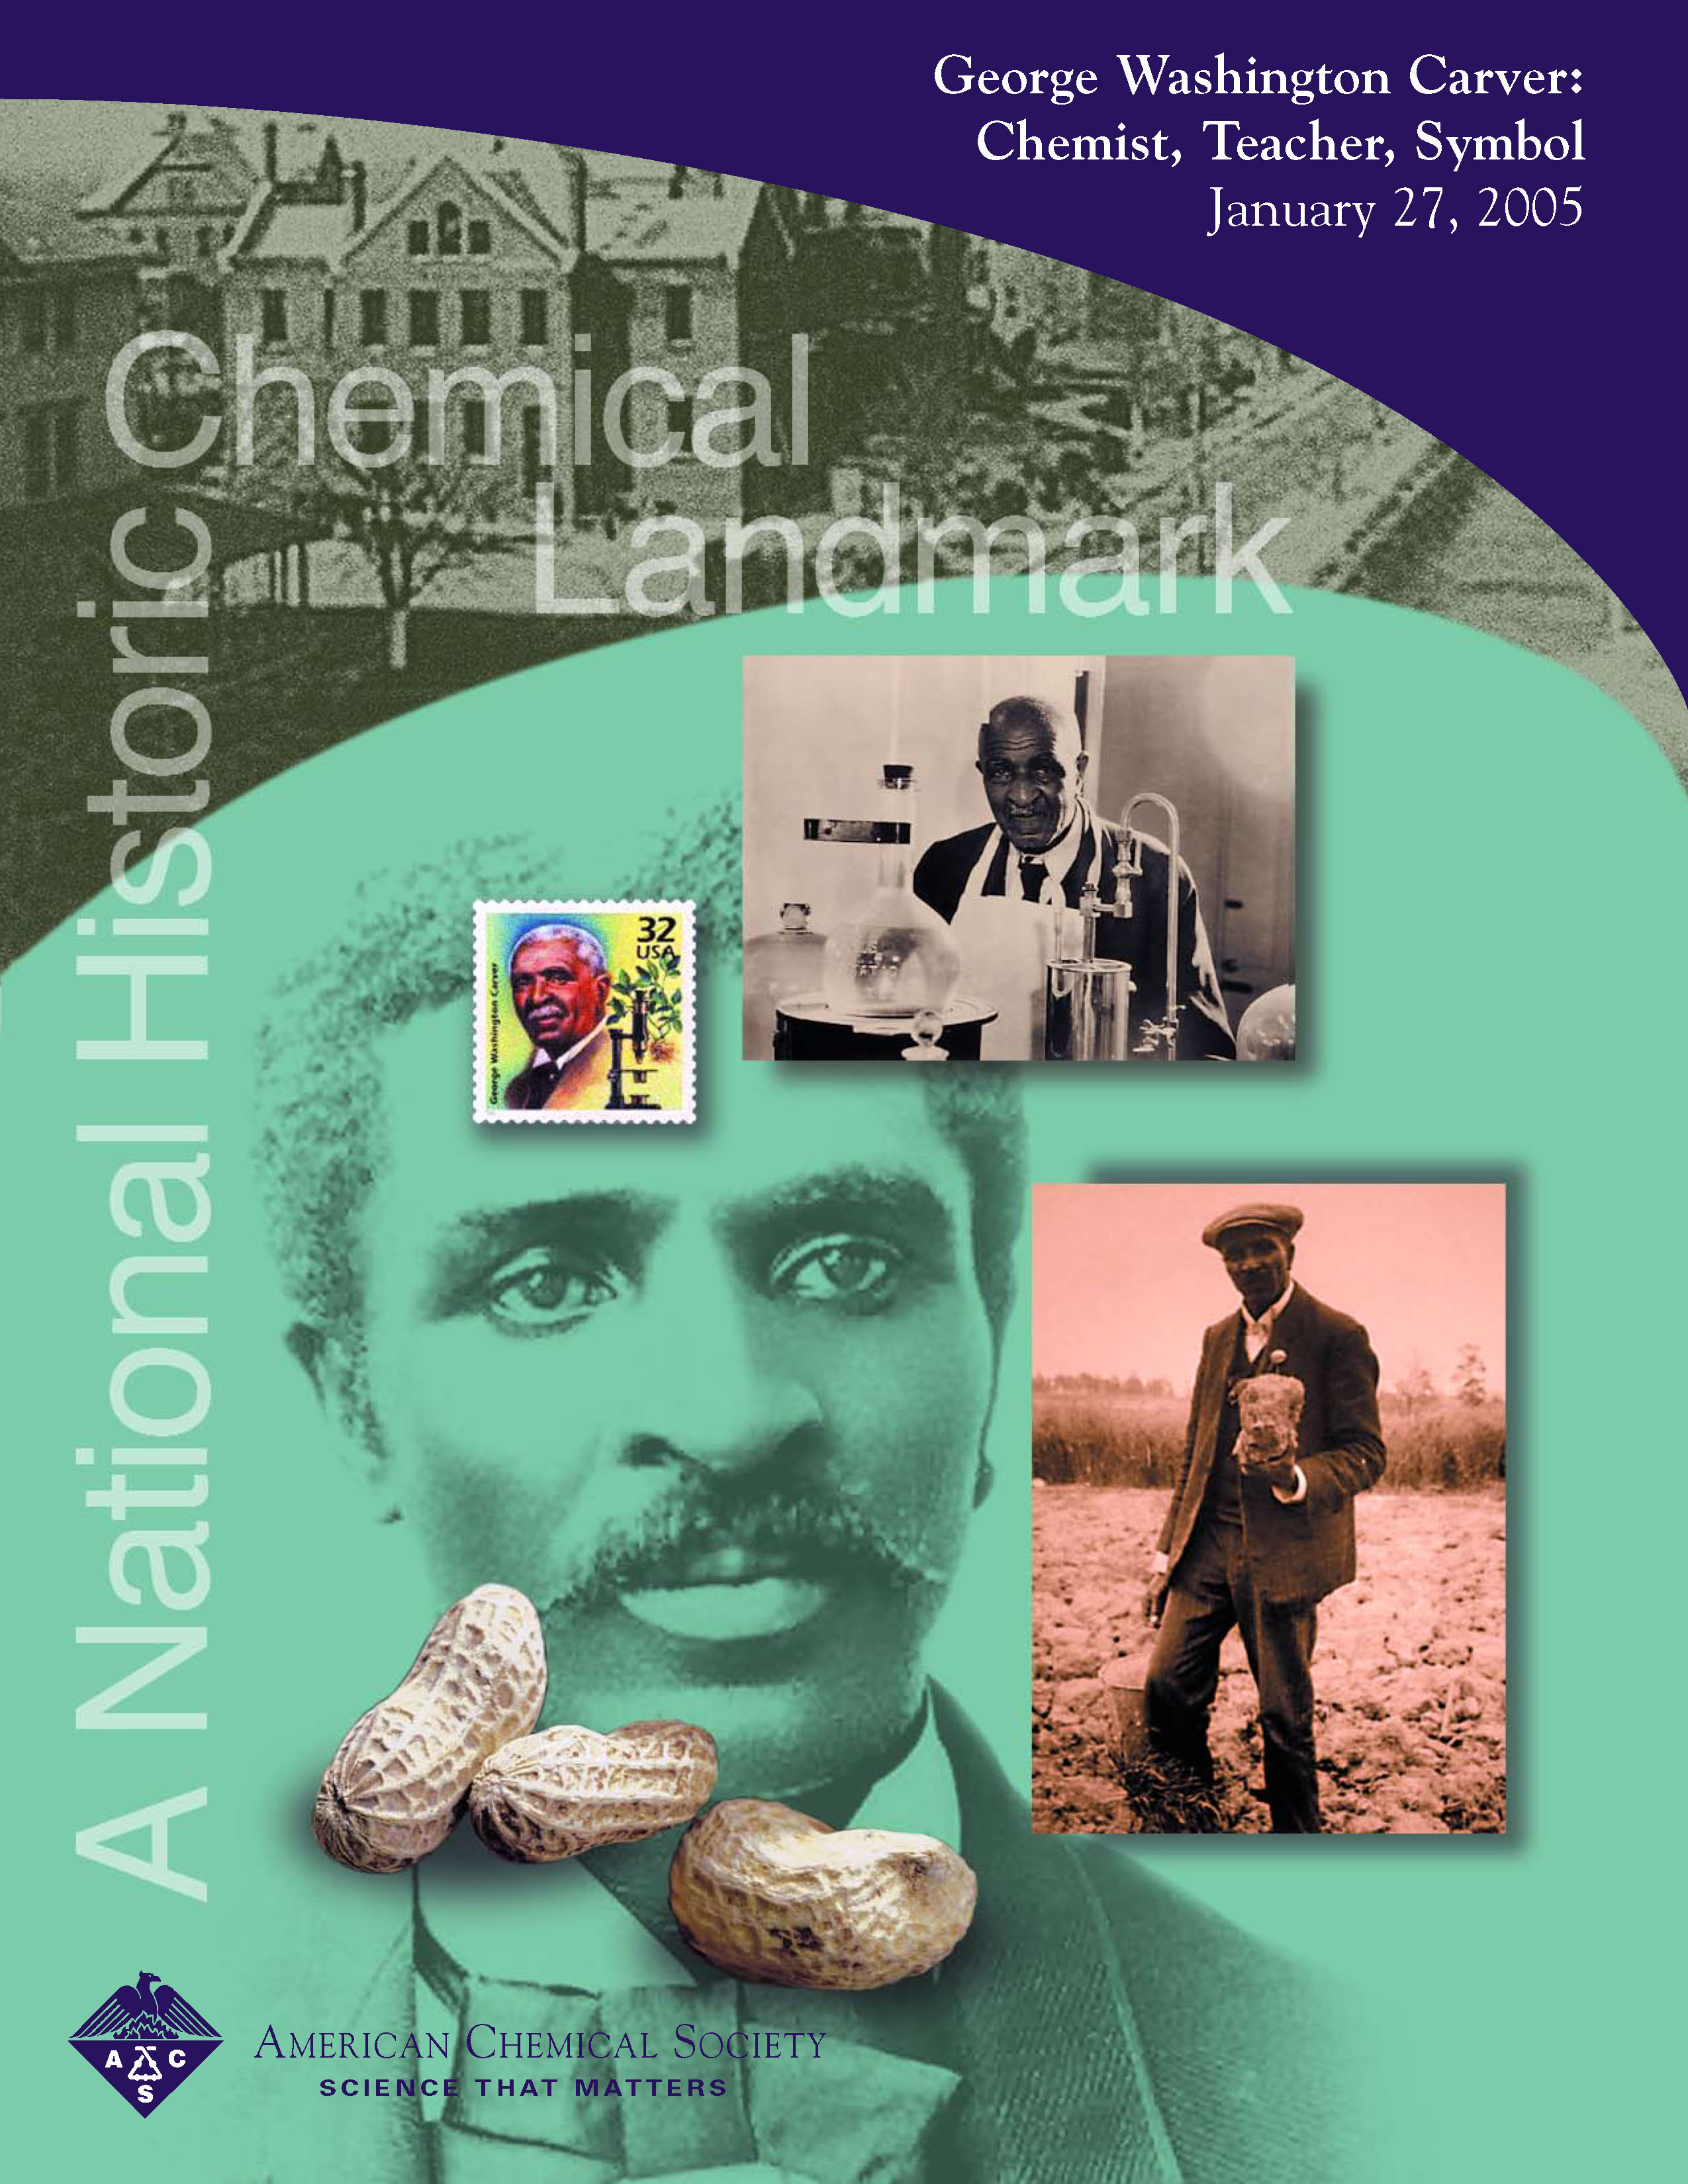 George Washington Carver  American Chemical Society George Washington Carver Chemist Teacher Symbol Commemorative Booklet